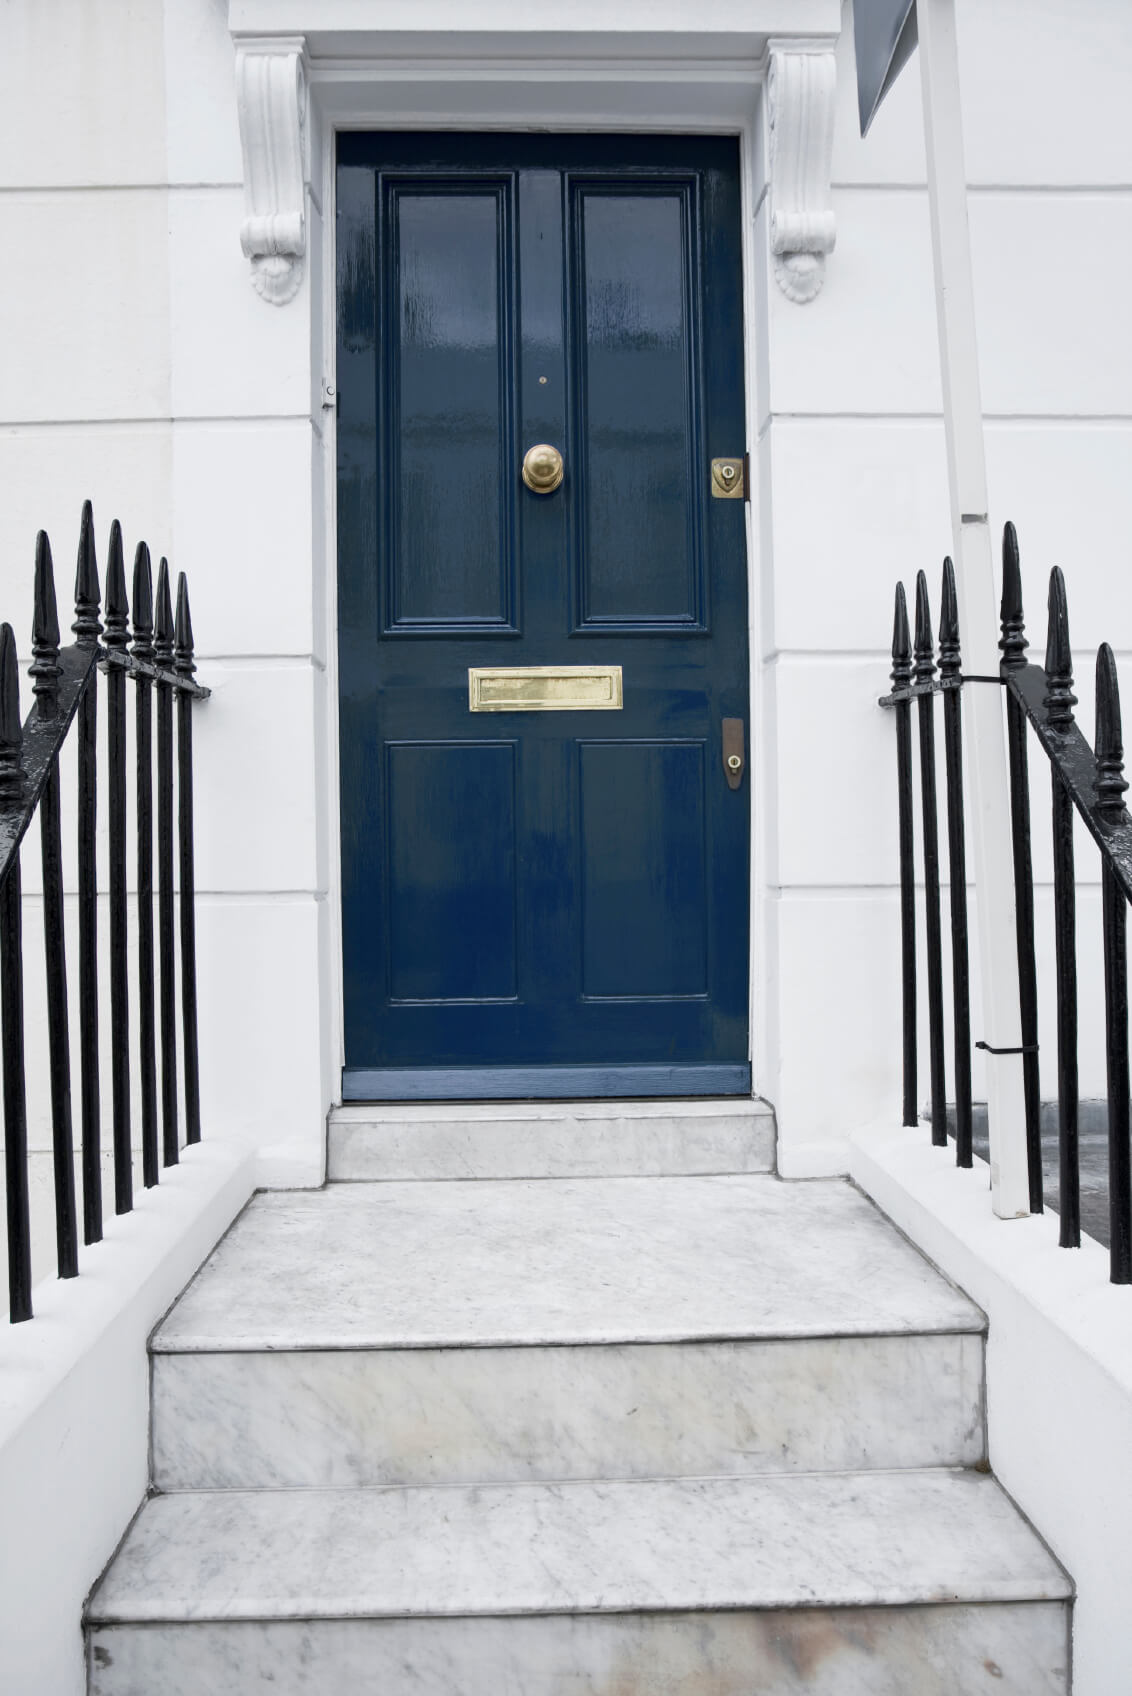 A white concrete front exterior with a blue front door. The front door features a brass door knob placed right in the middle. The door also features a peephole right above the door knob, two door locks, and a mail slot below. Right in front of the doorway are big white marbled steps and black steel fences.